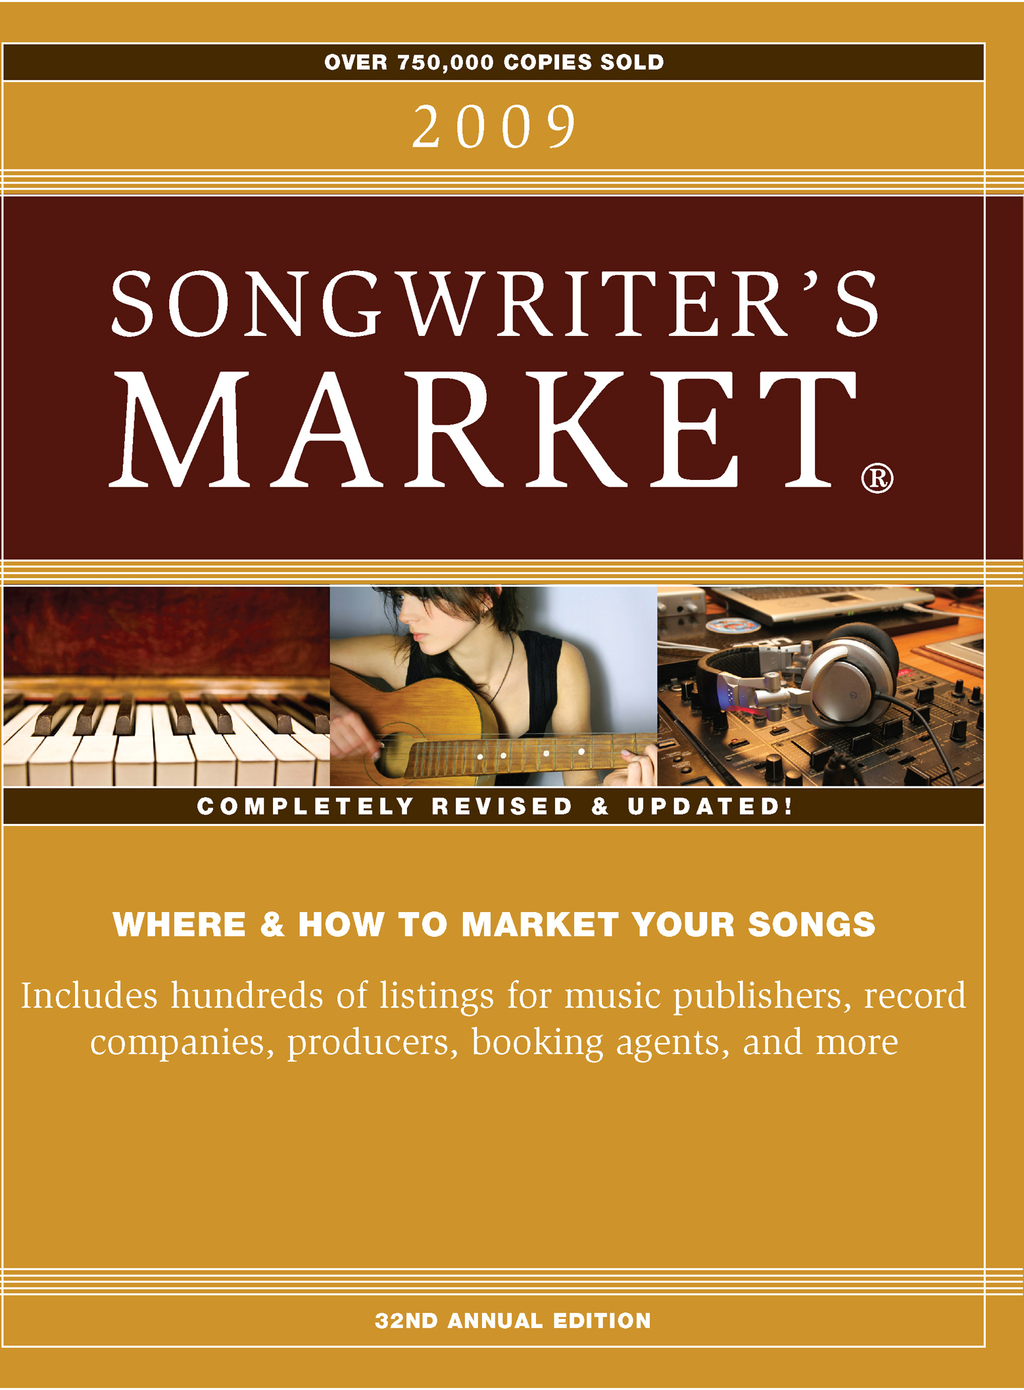 2009 Songwriter's Market - Listings